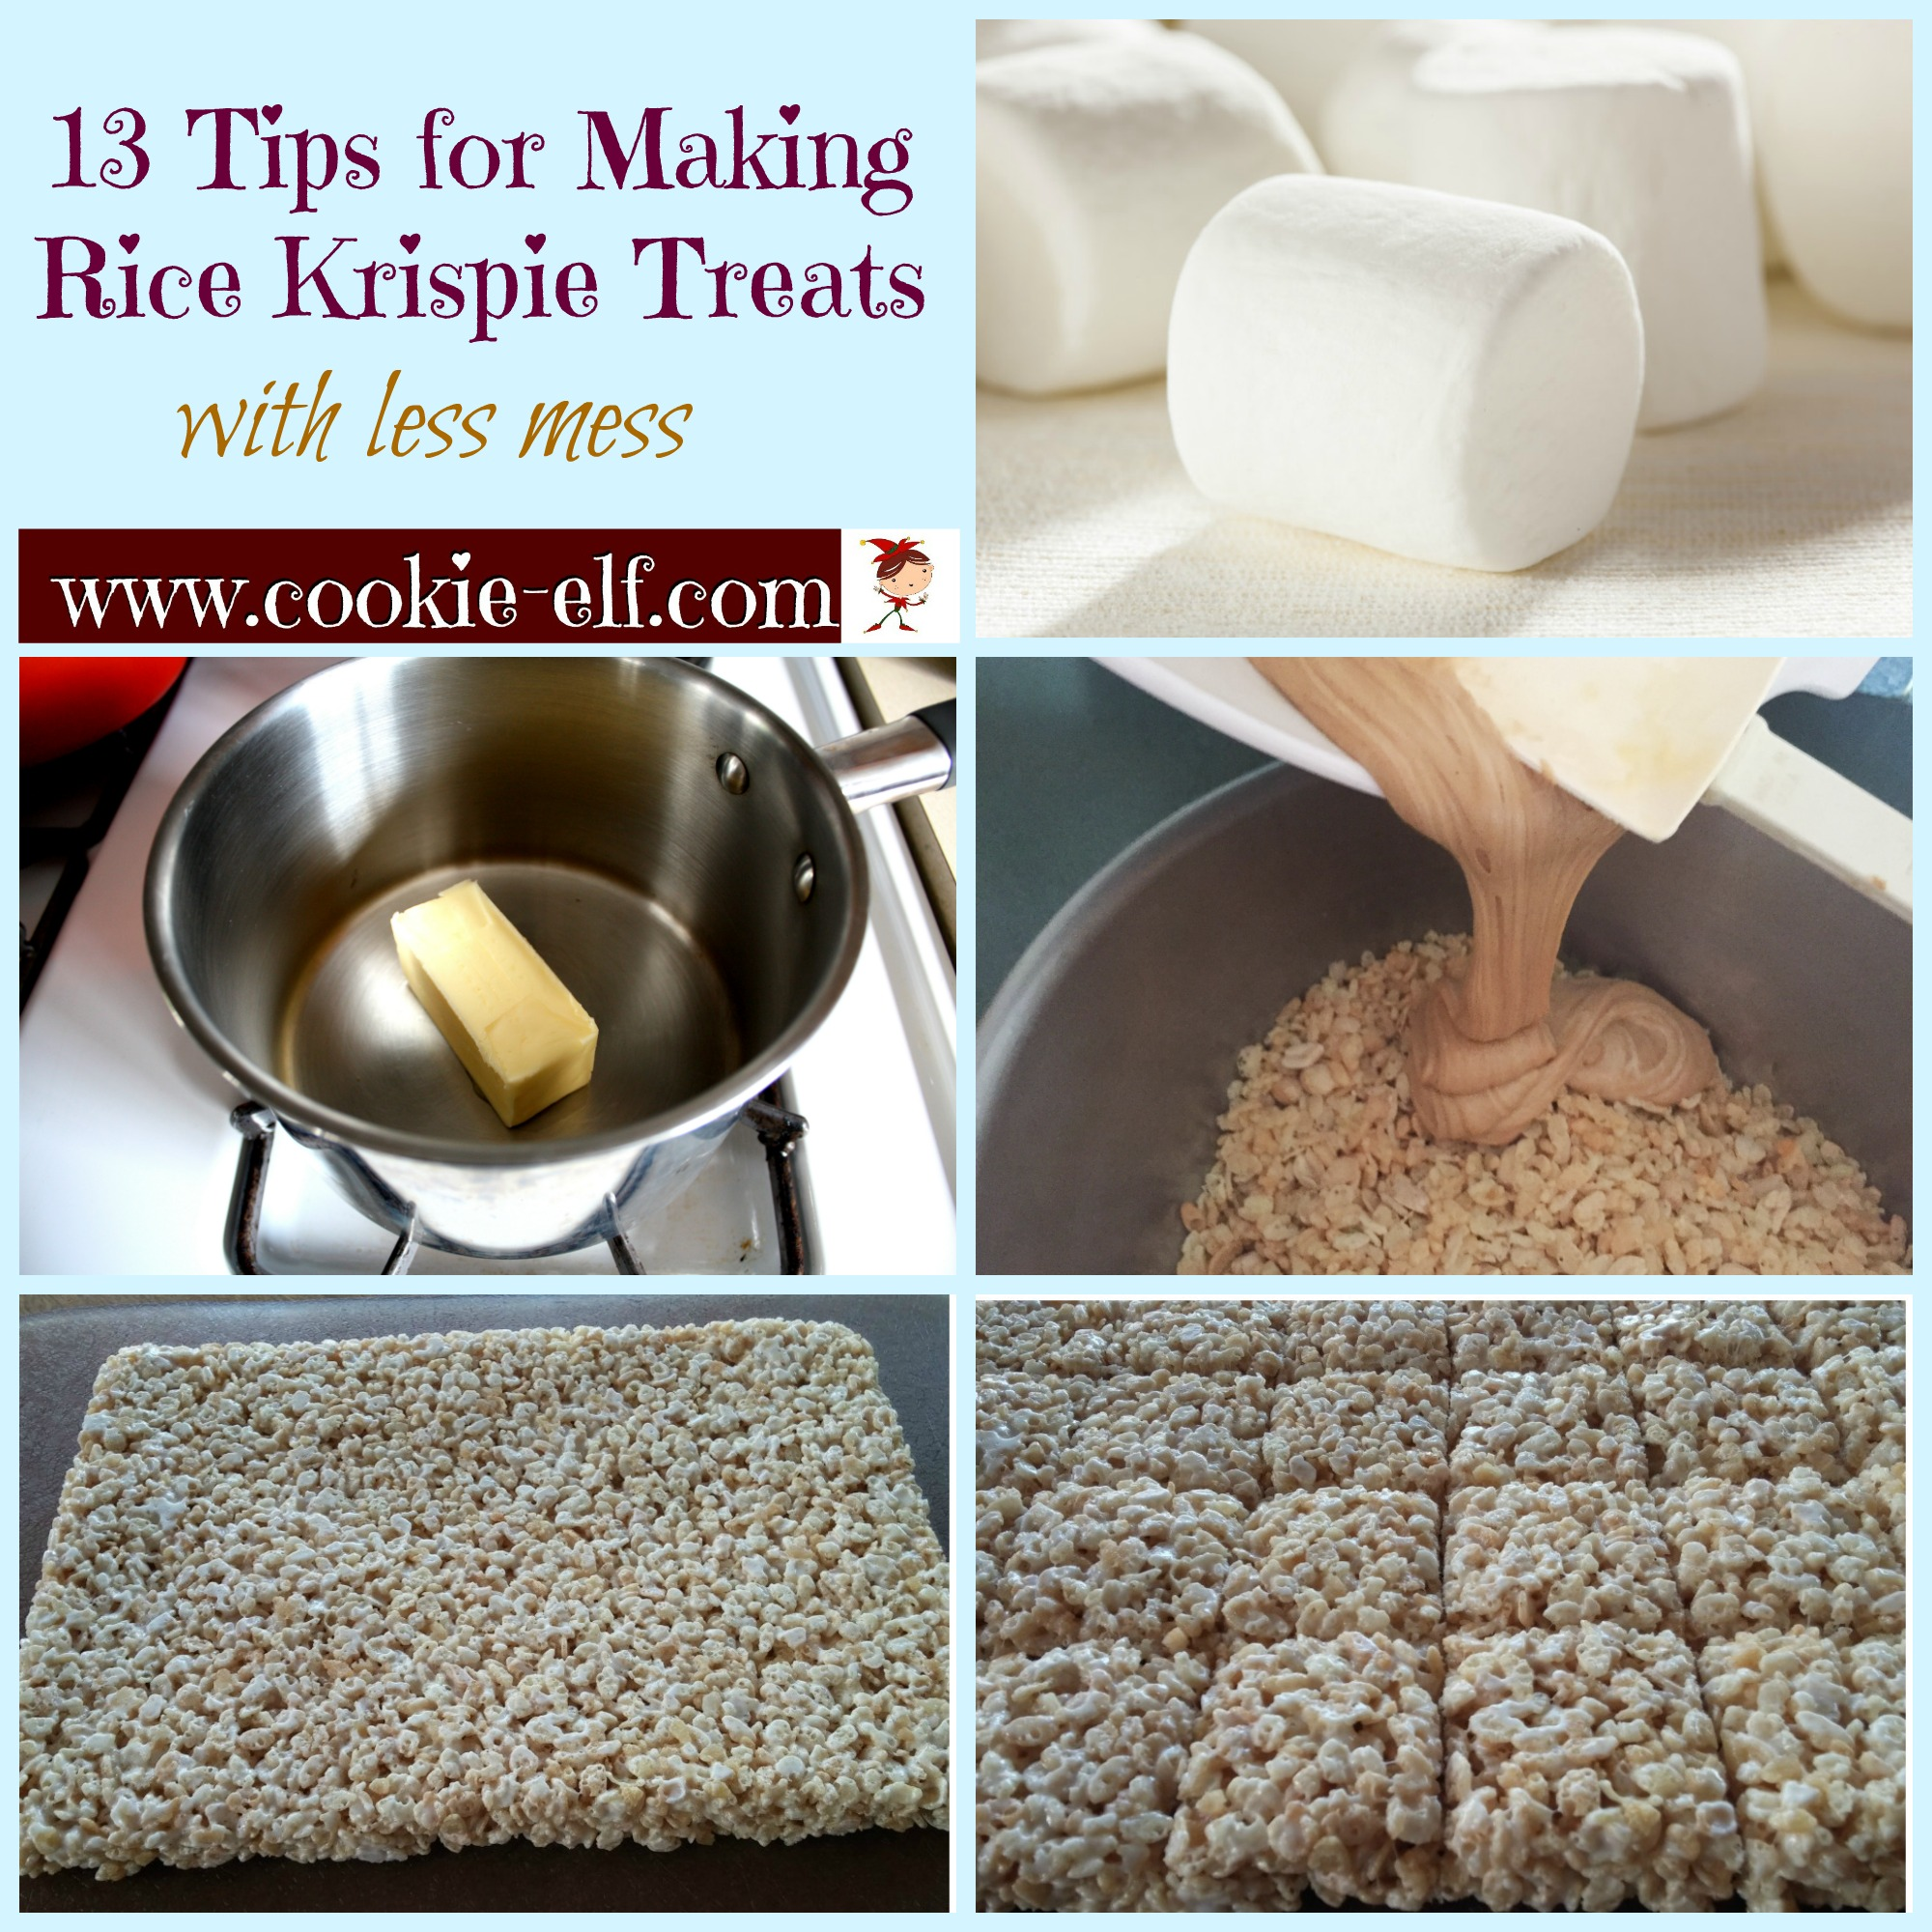 13 baking tips for making Rice Krispie Treats from The Cookie Elf